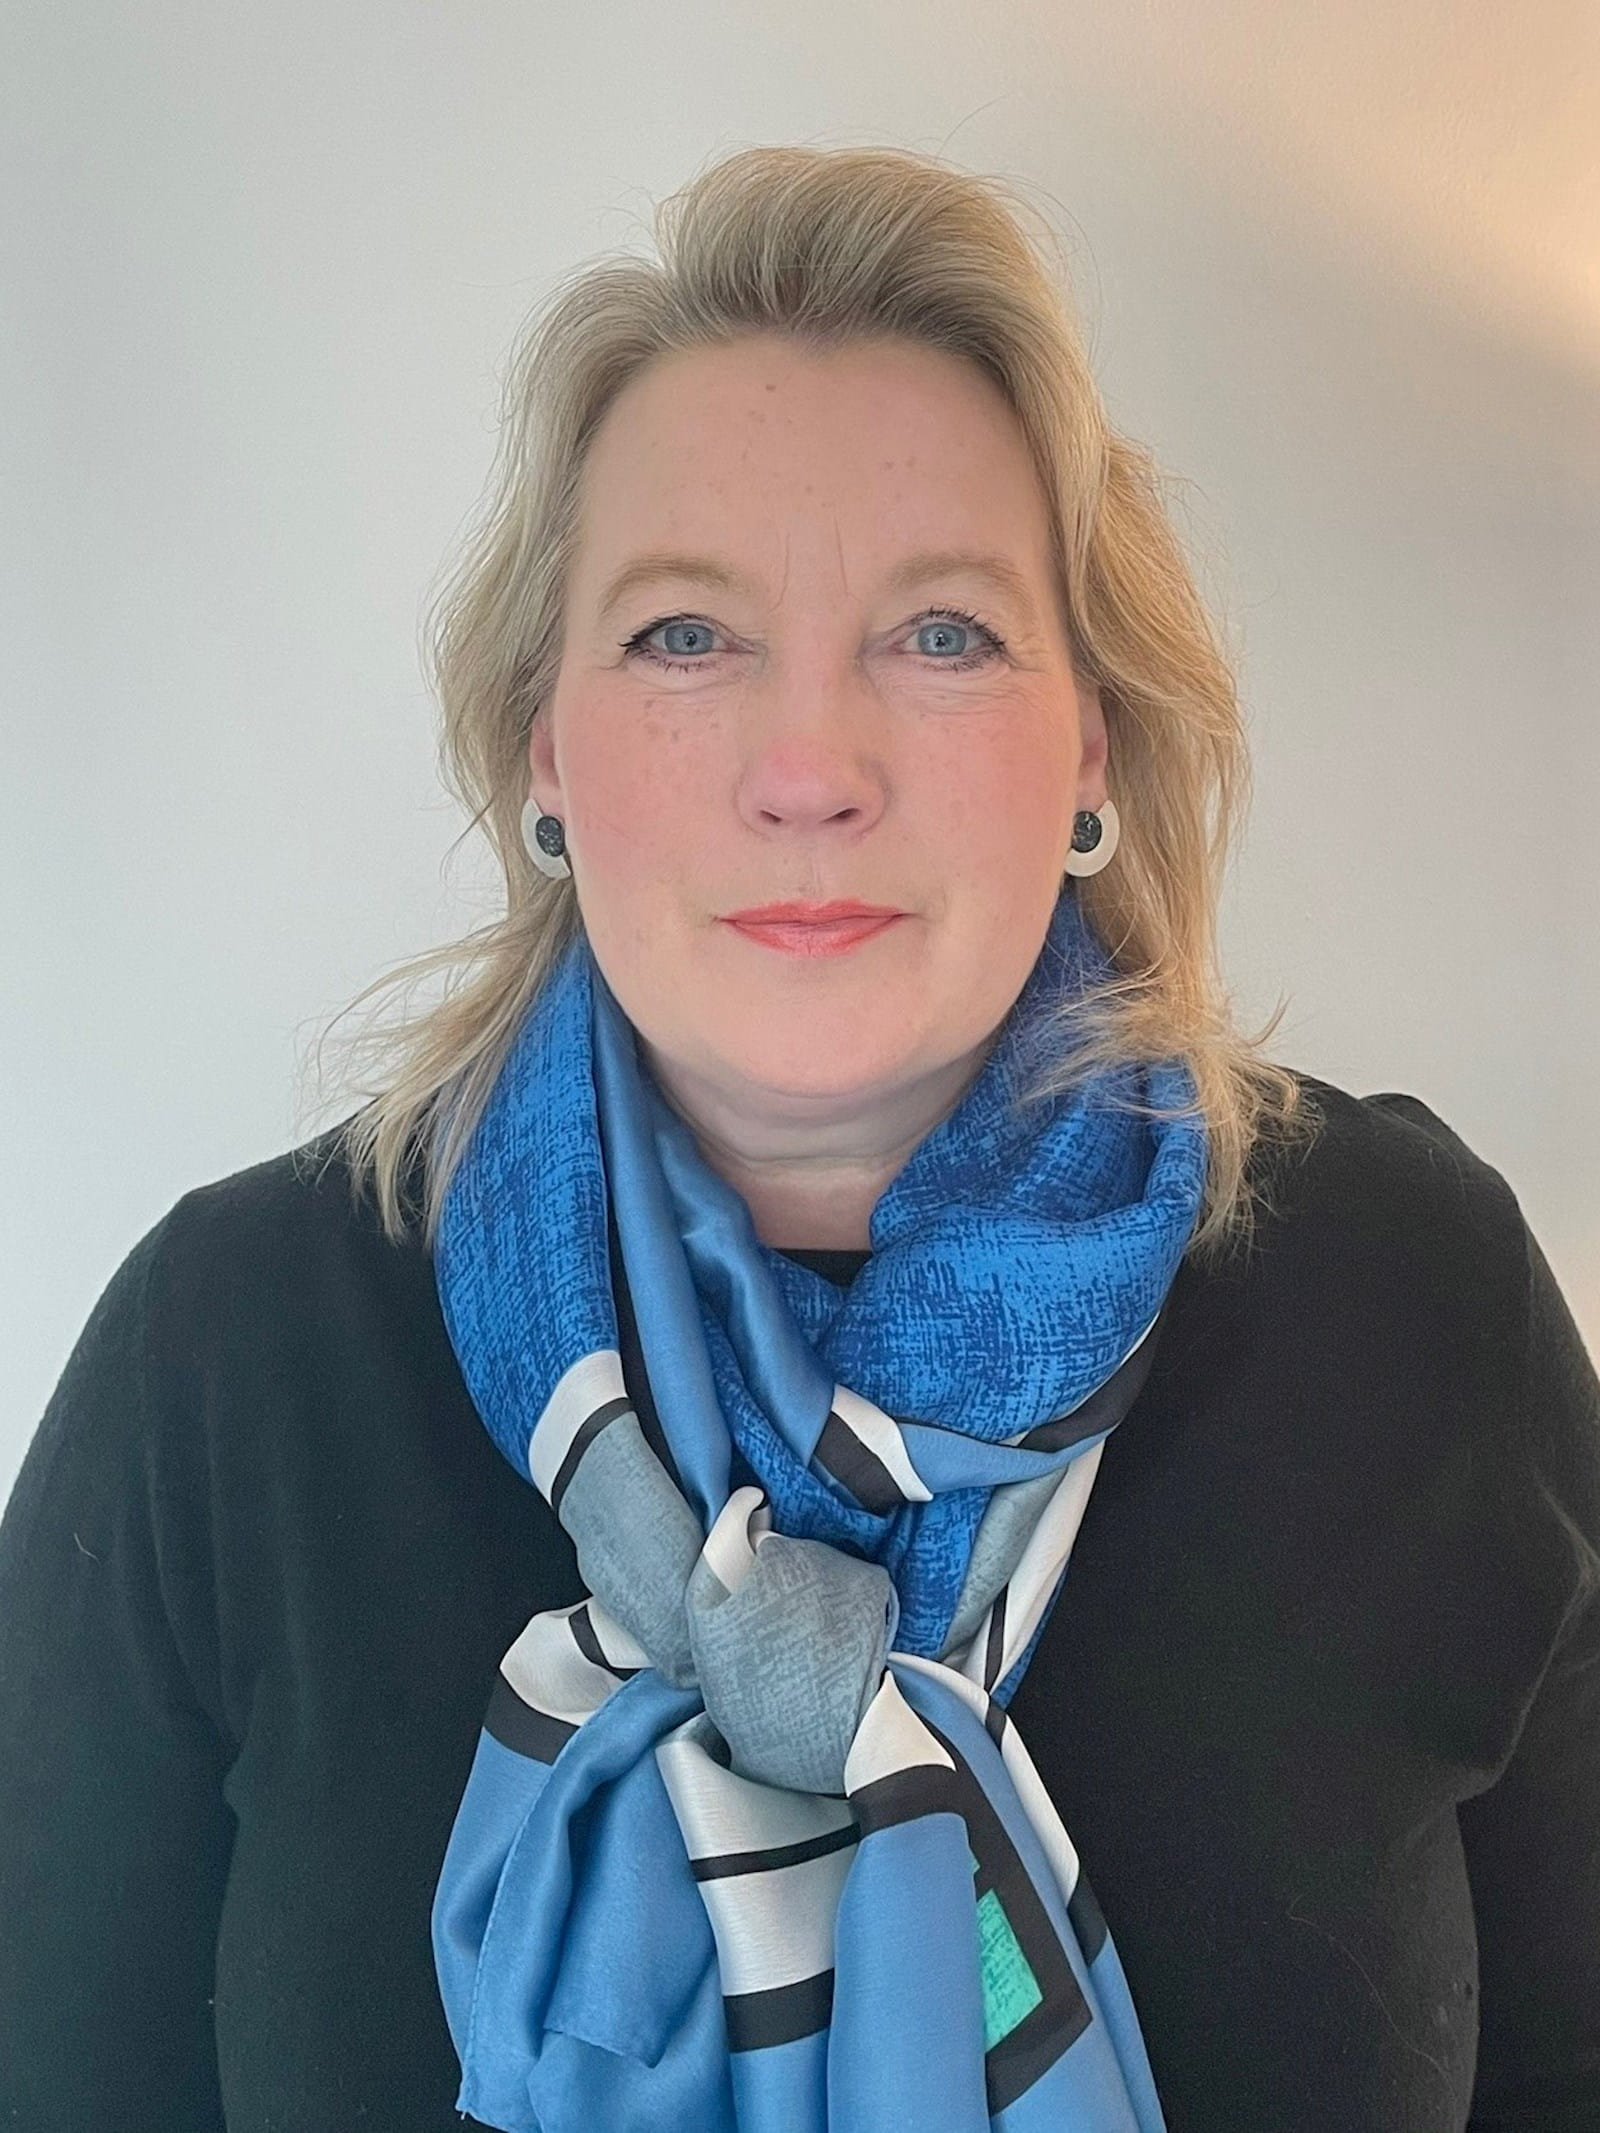 Karen Morral is CEO of Lockdown Cyber Security and a speaker at ICAEW Virtually Live